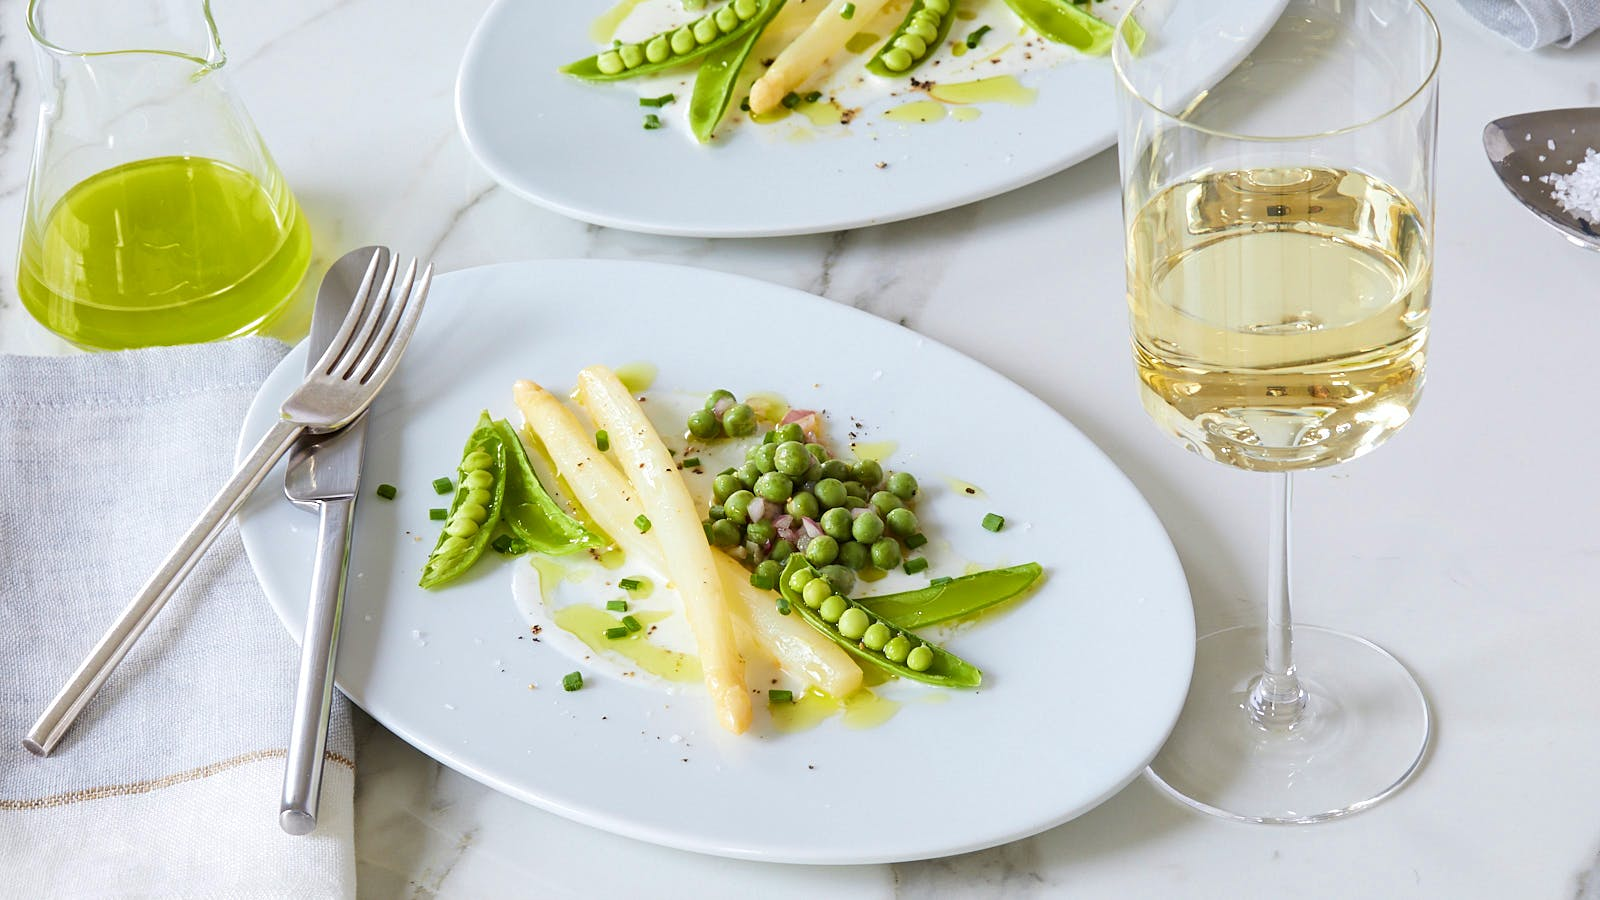 Perfect Match Recipe: White Asparagus with Peas, Chive Oil and Buttermilk Dressing